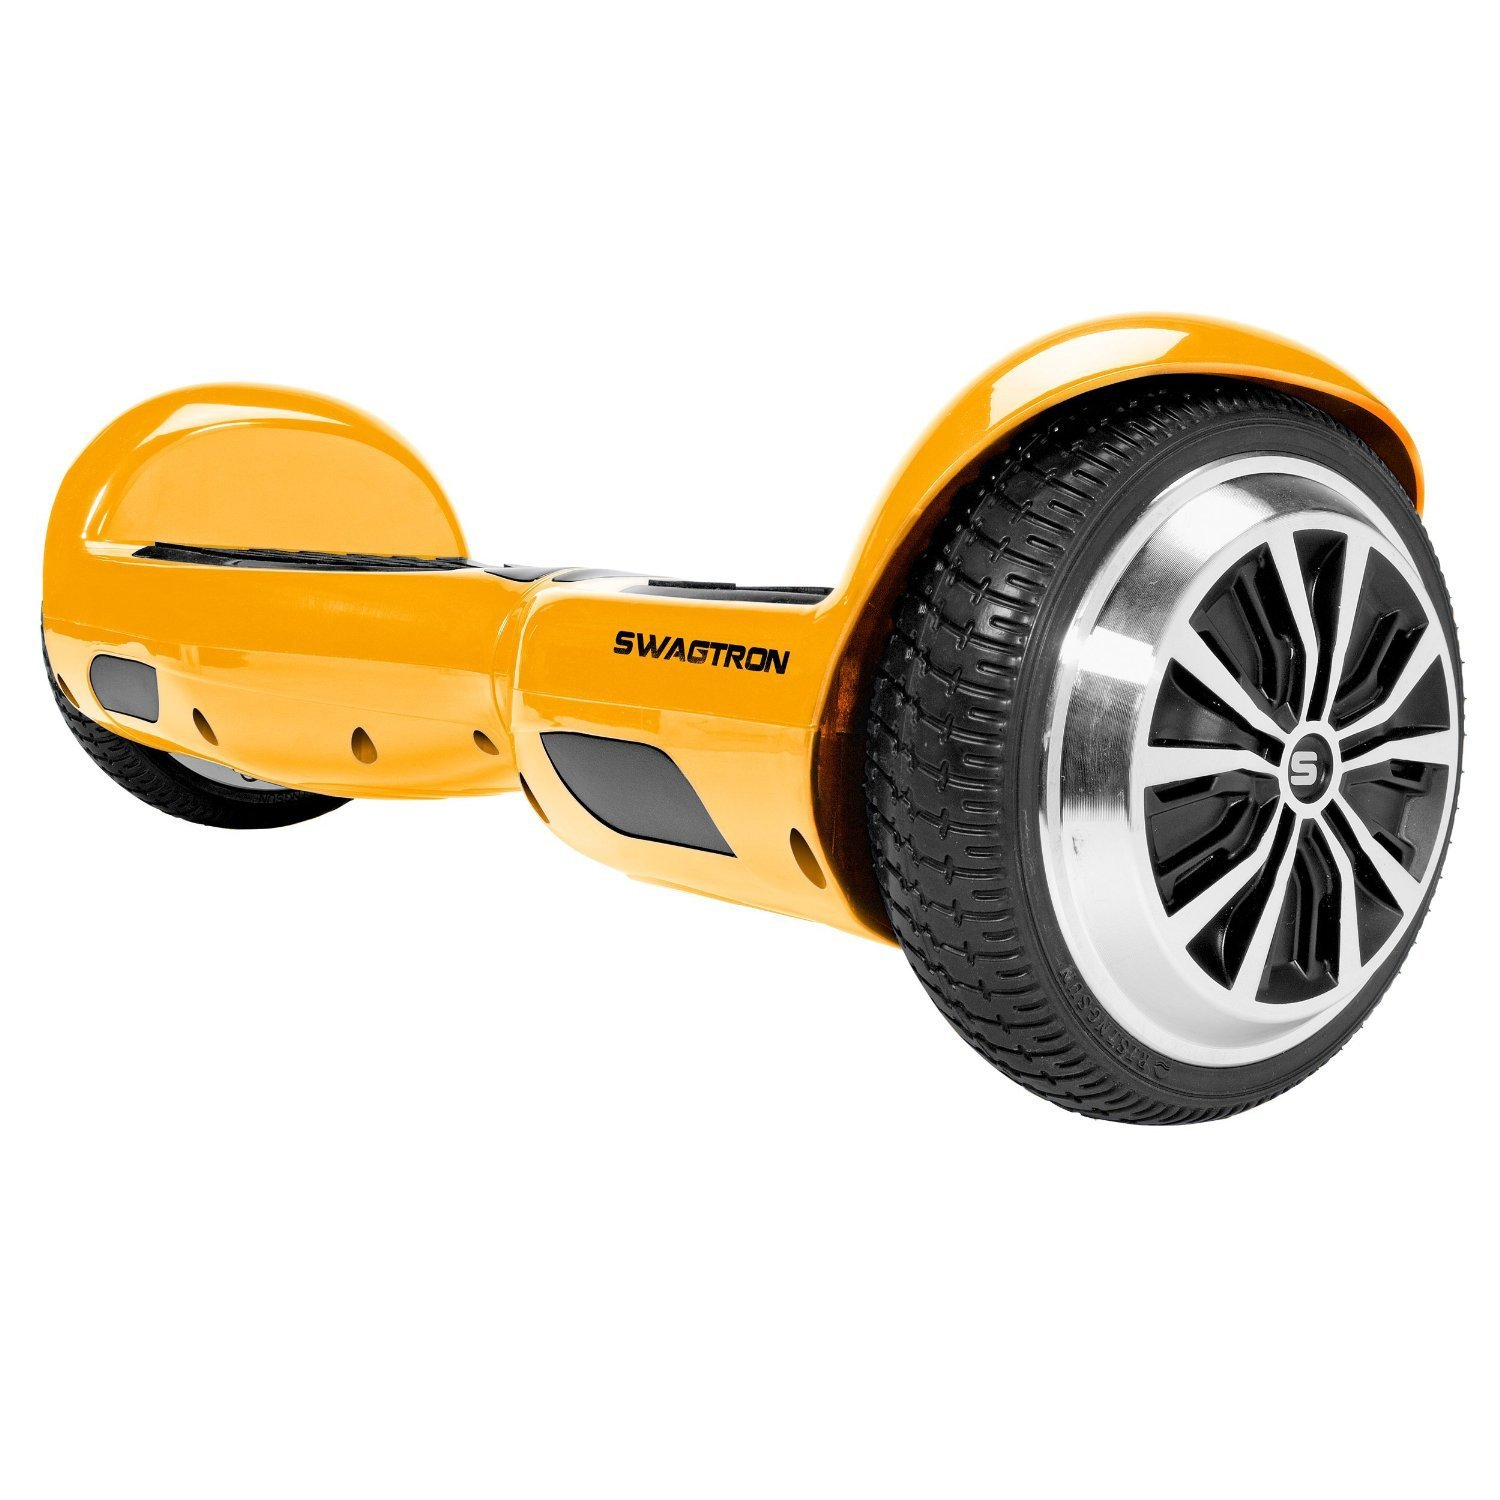 SwagTron Electric Self Balancing Scooter